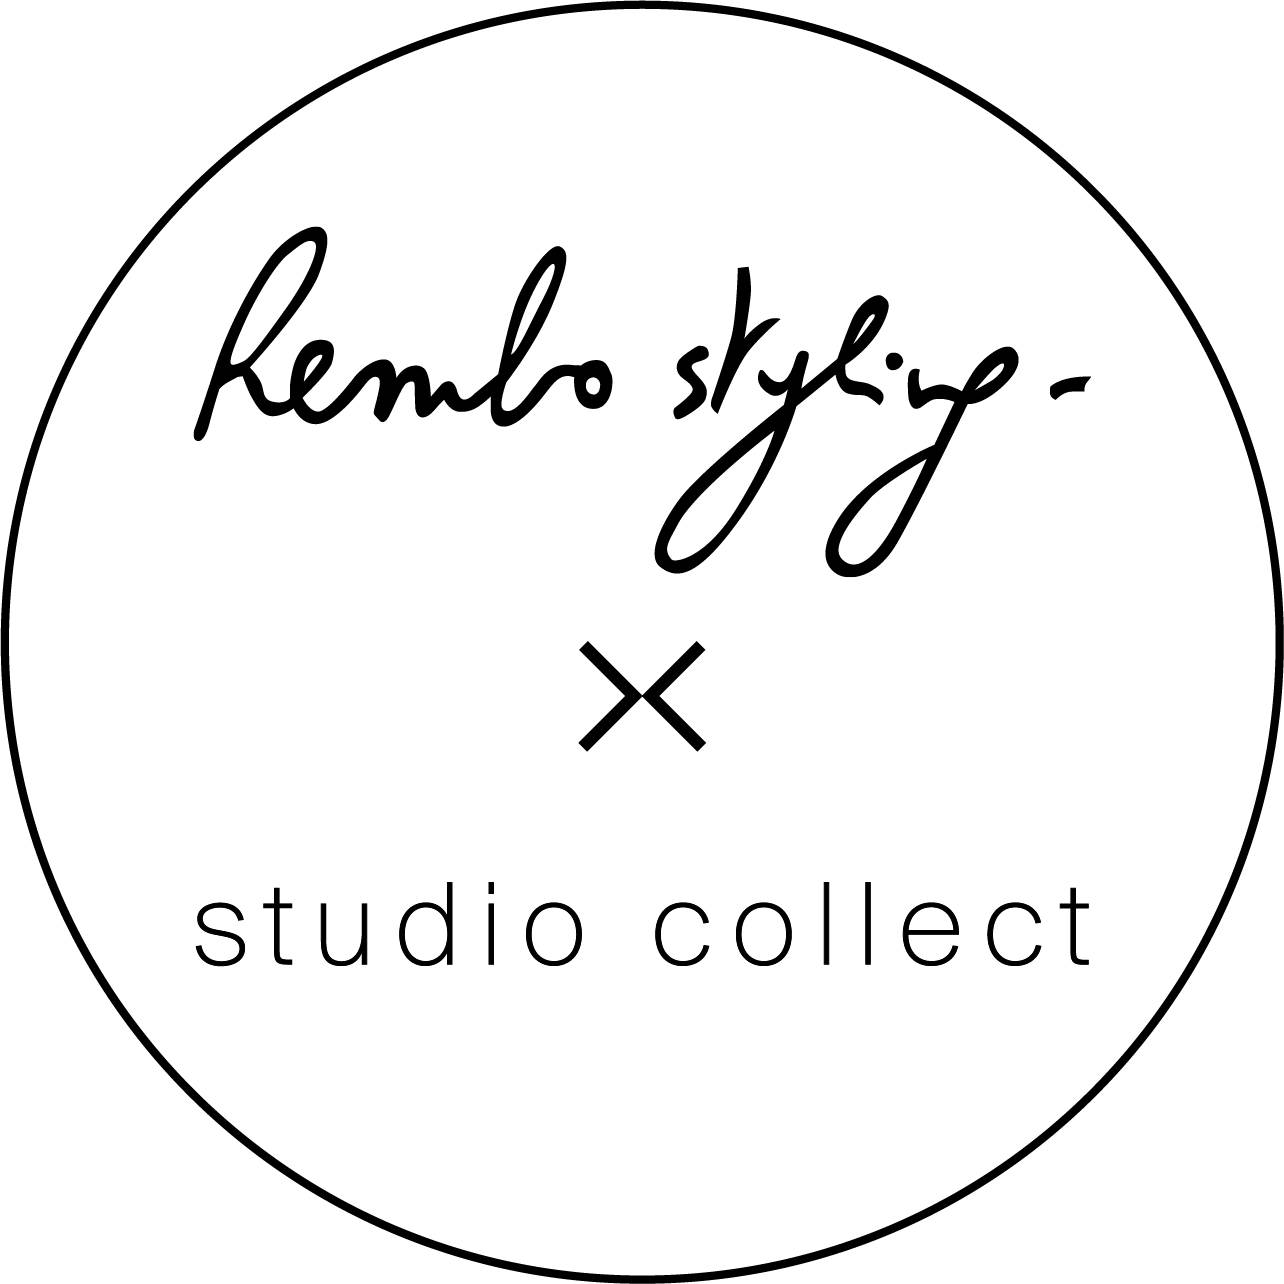 Rembo Styling x Studio Collect